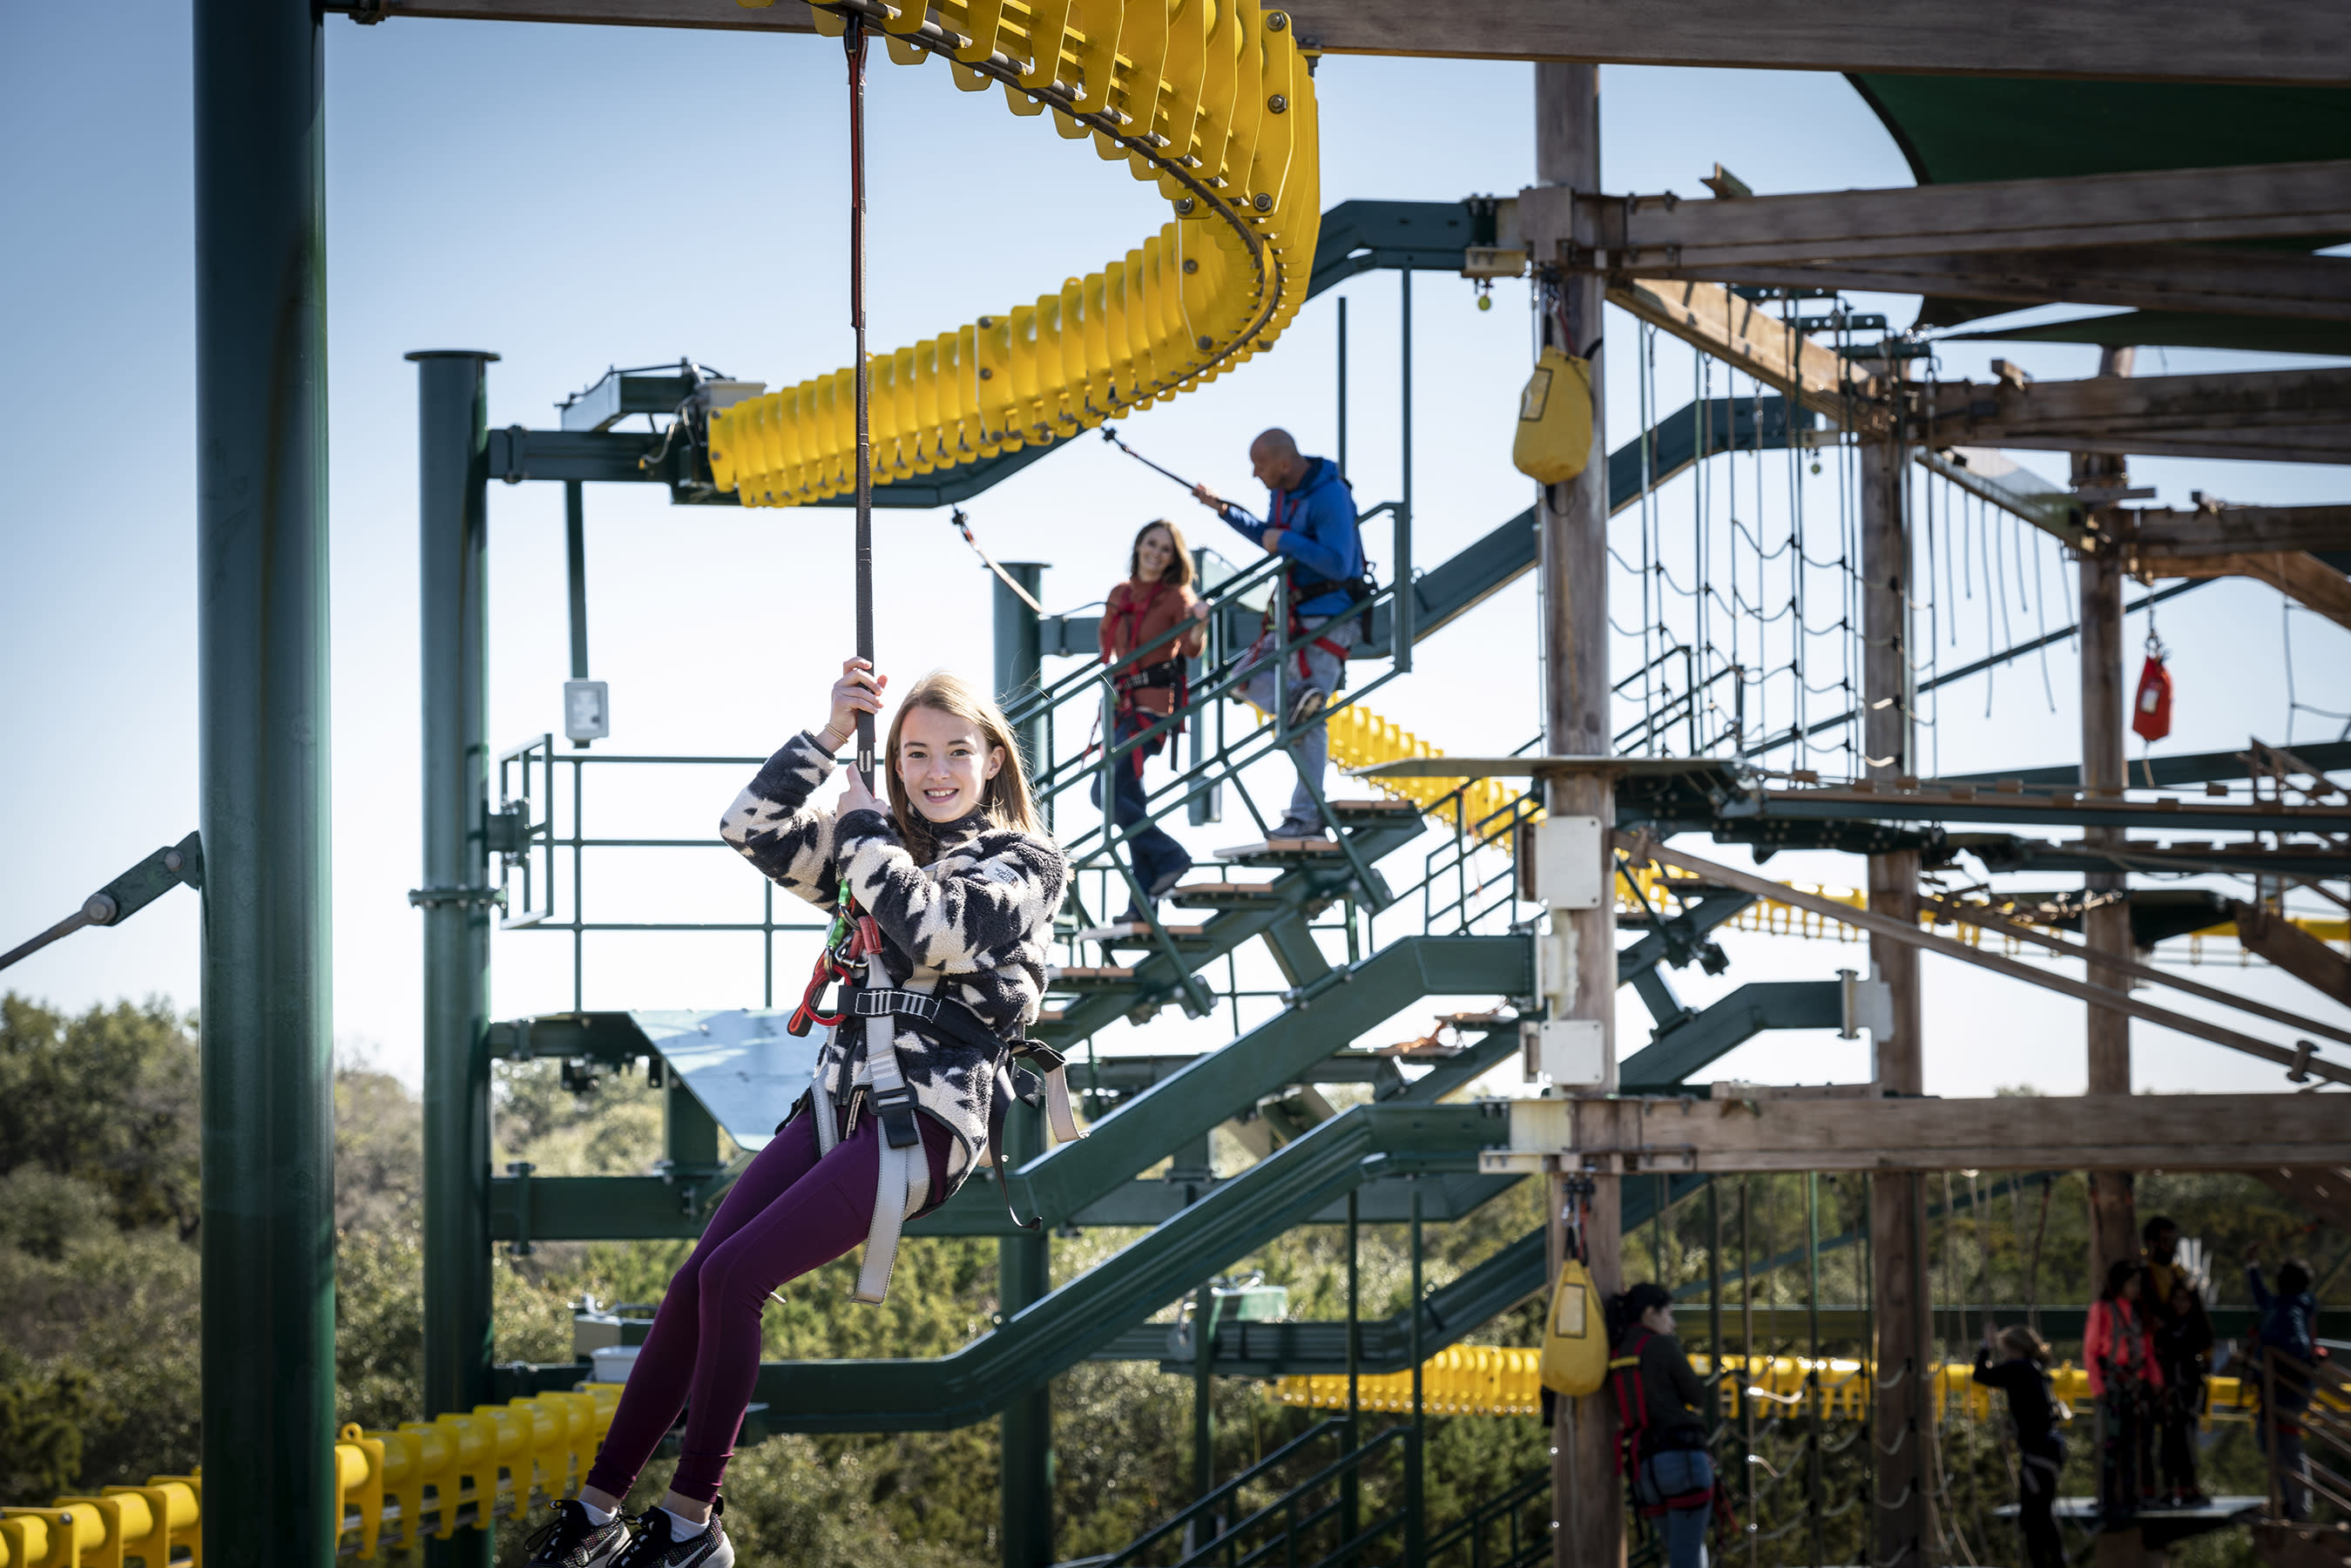 Natural Bridge Caverns takes outdoor entertainment to another level with its newest attraction Twisted Trails. The six stories high aerial ropes course offers 50 elements and incredible Texas hill country views.